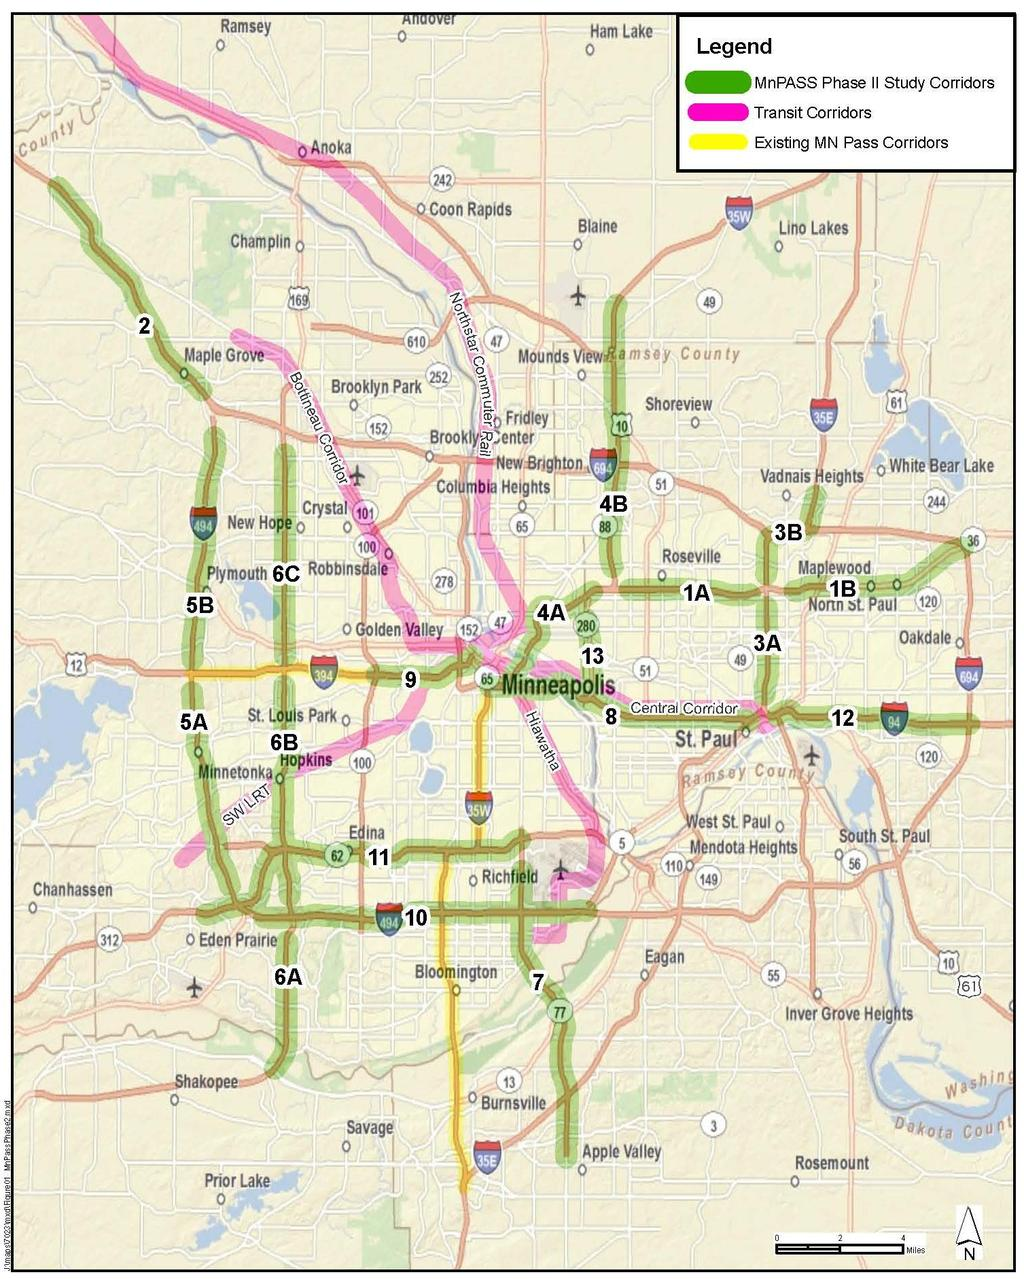 Potential MnPASS Corridors 1. TH 36: I-35W to I-694 2. I-94: TH 101 to I-494 3. I-35E: I-94 to CR E 4. I-35W: Minneapolis to Blaine 5. I-494: TH 212 to I-94 6. TH 169: TH 101 to I-94 7.